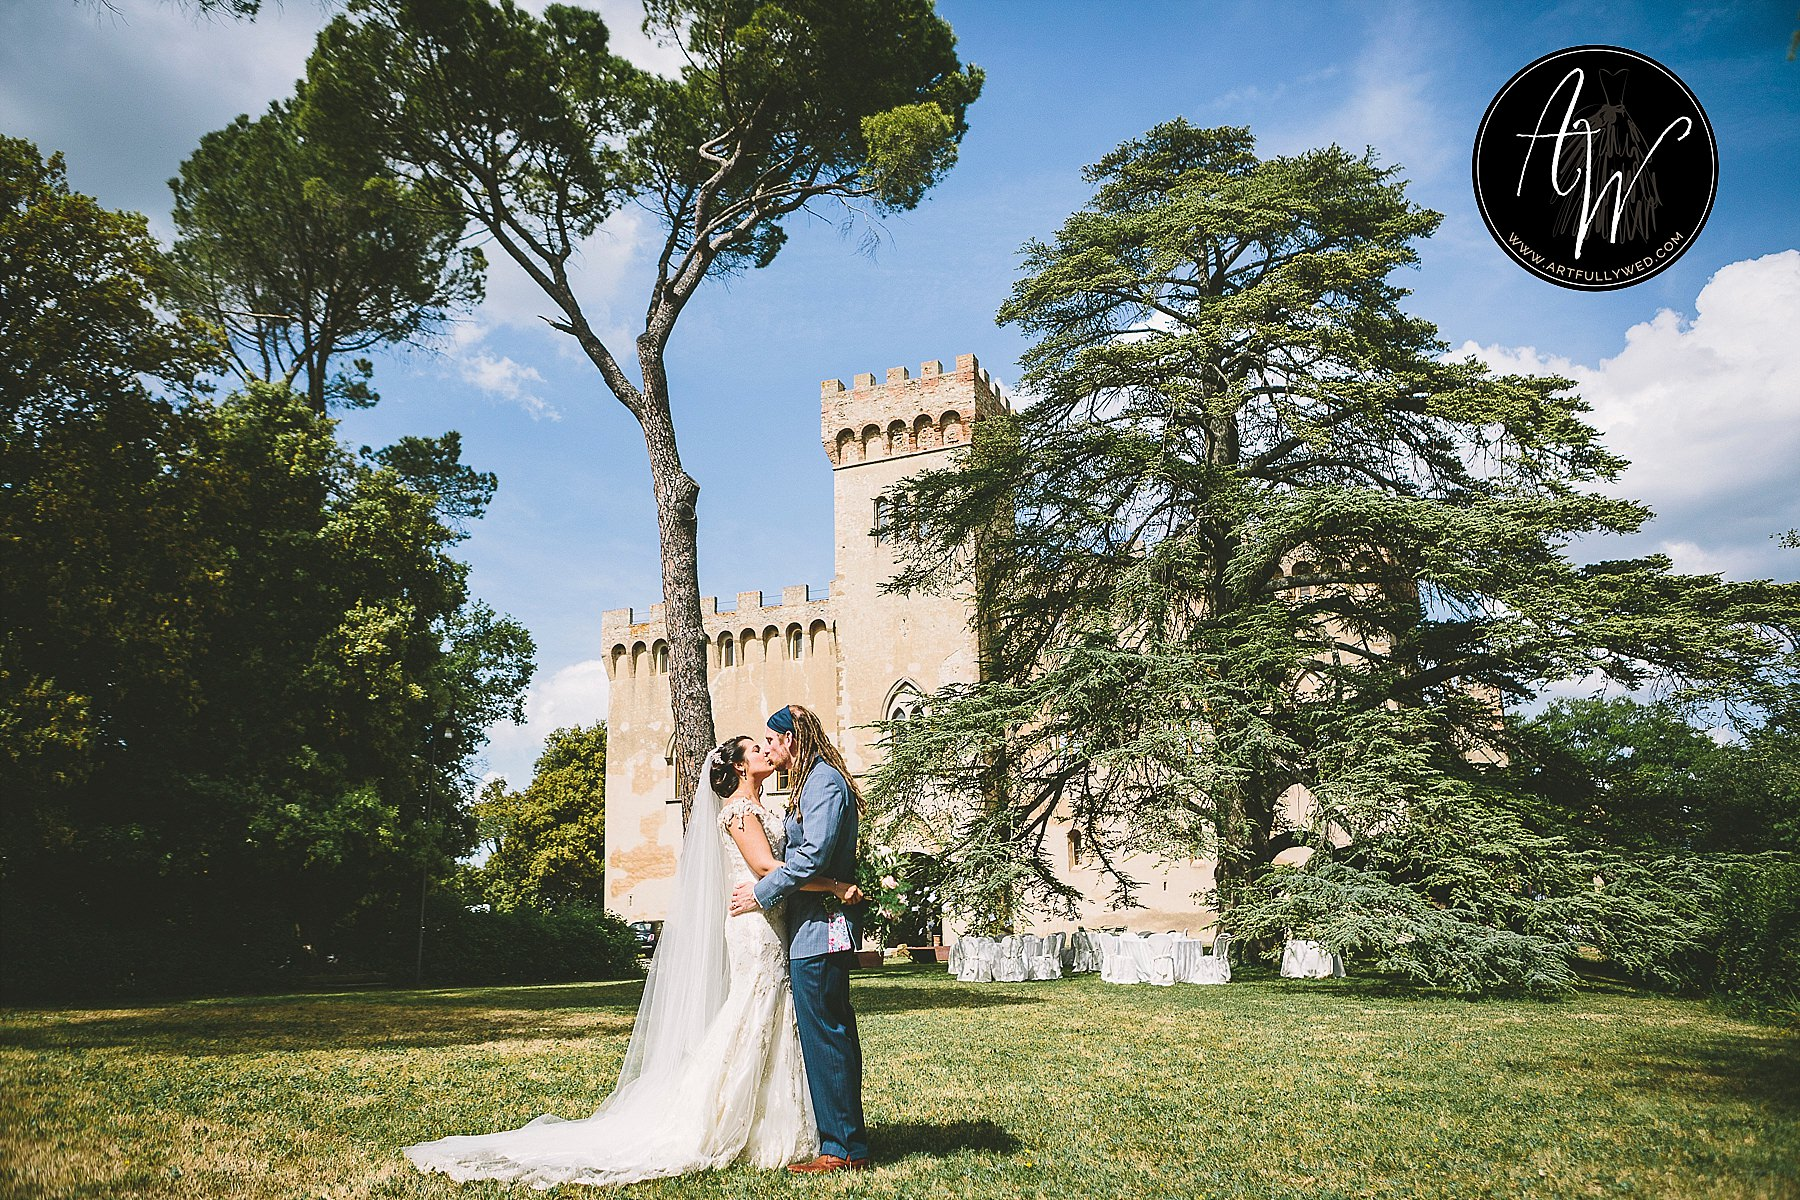 Beautiful wedding planned by Efffetti at Santa Maria Novella Castle by Studio Bonon Photography